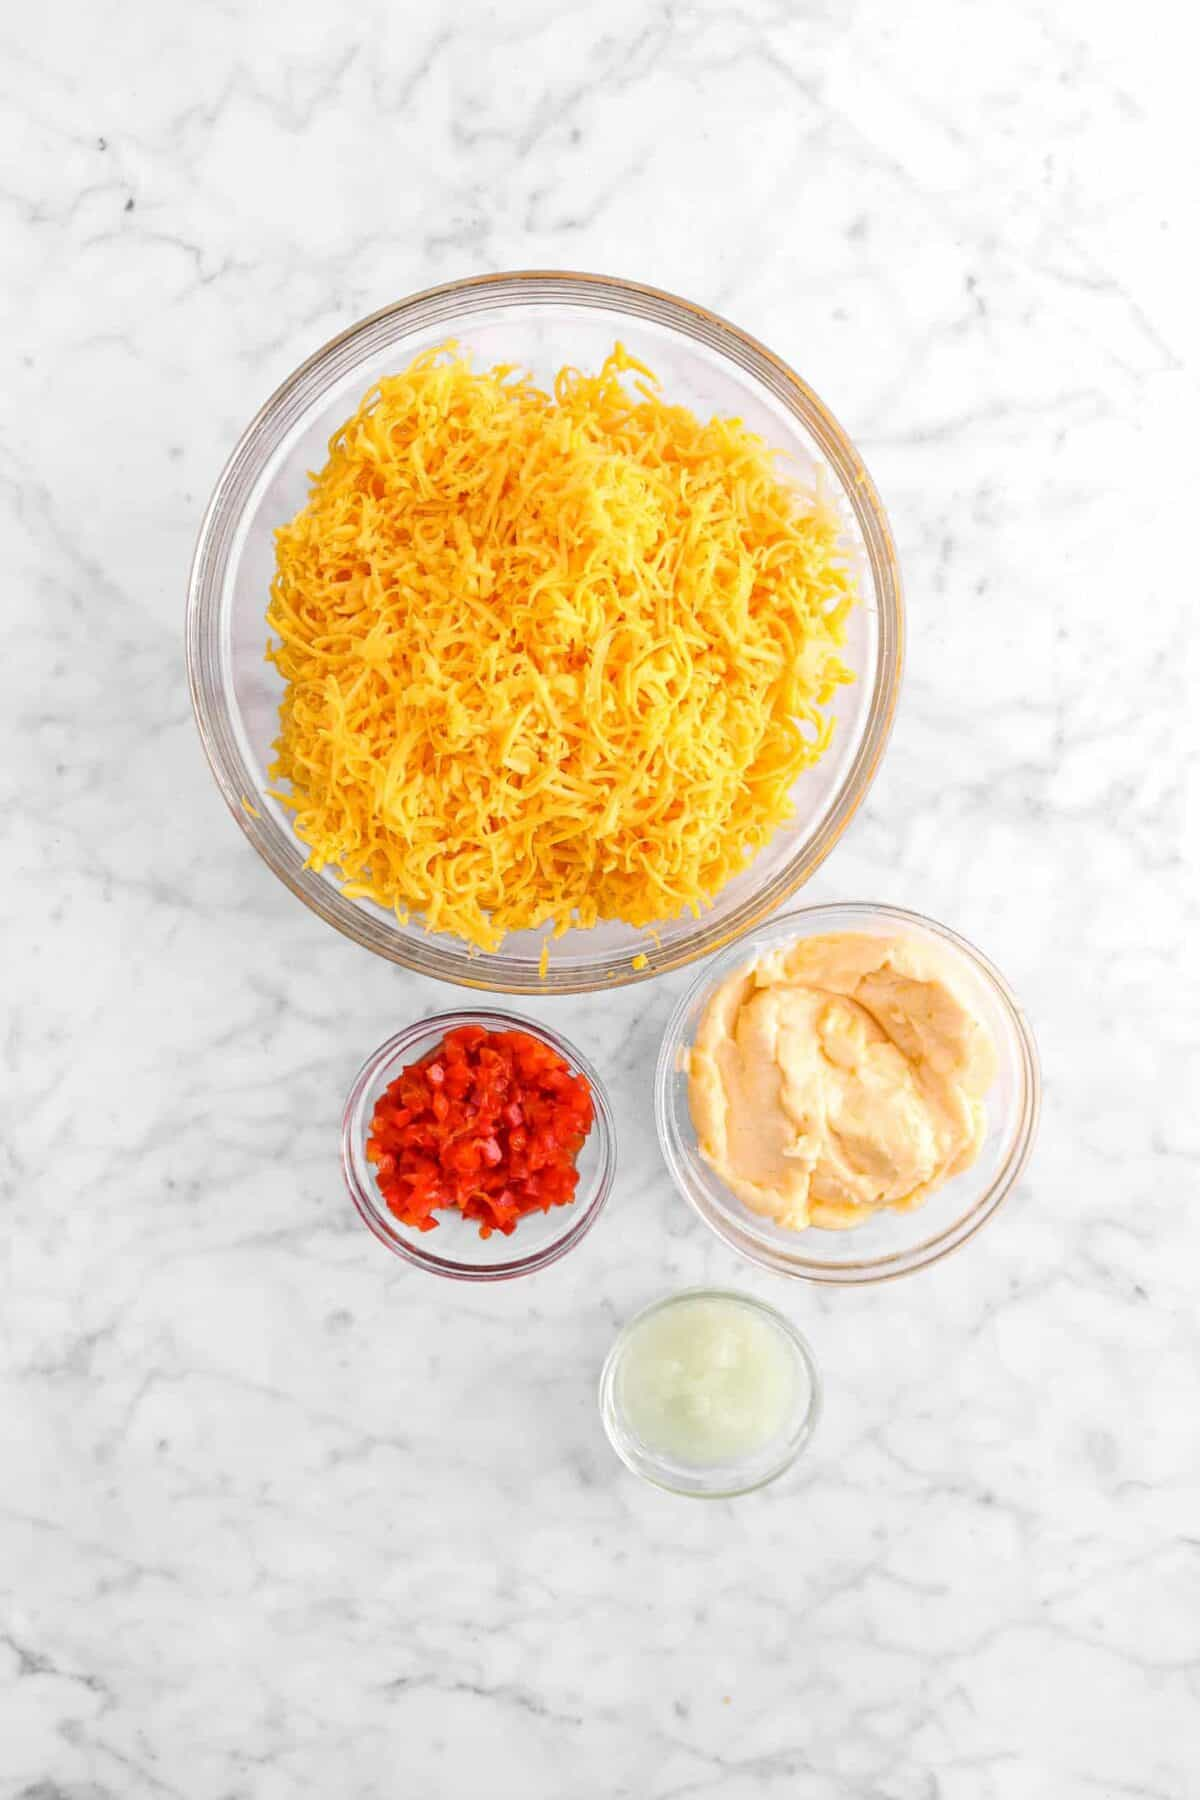 grated cheddar cheese, mayo, chopped pimento cheese, and grated onion in glass bowls